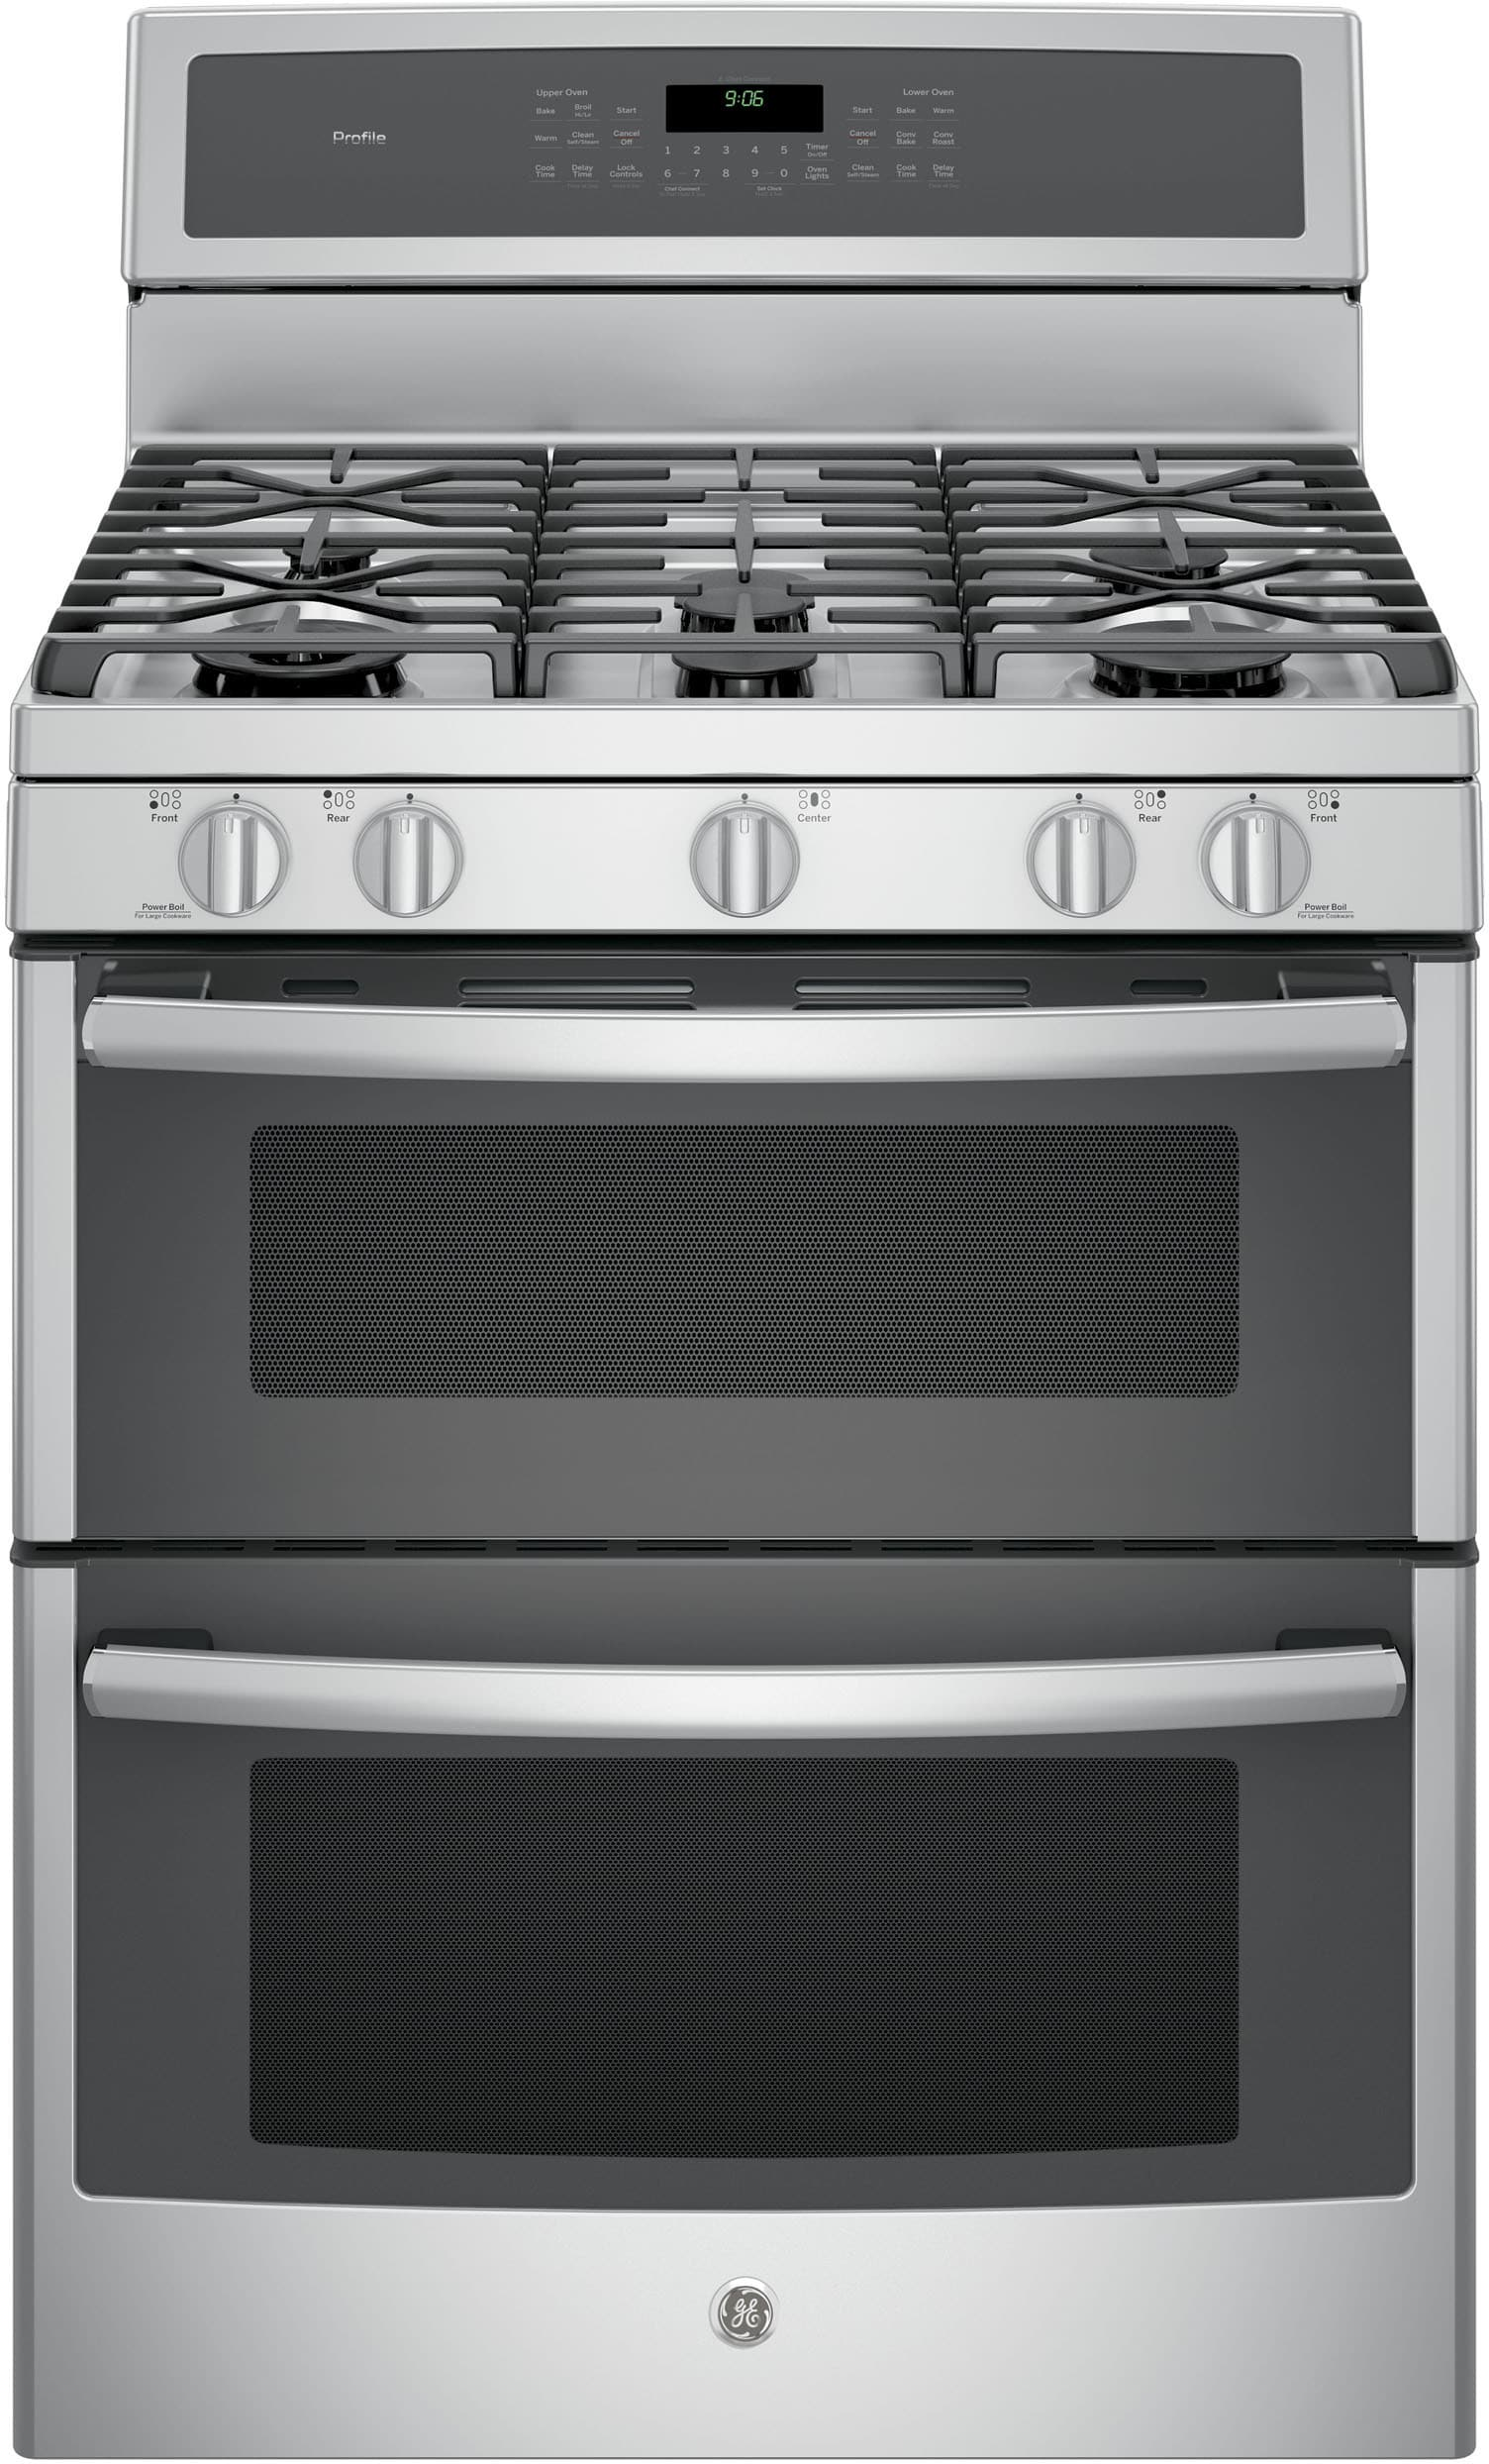 ge pgb980zejss 30 inch freestanding double oven gas range with convection chef connect tri. Black Bedroom Furniture Sets. Home Design Ideas